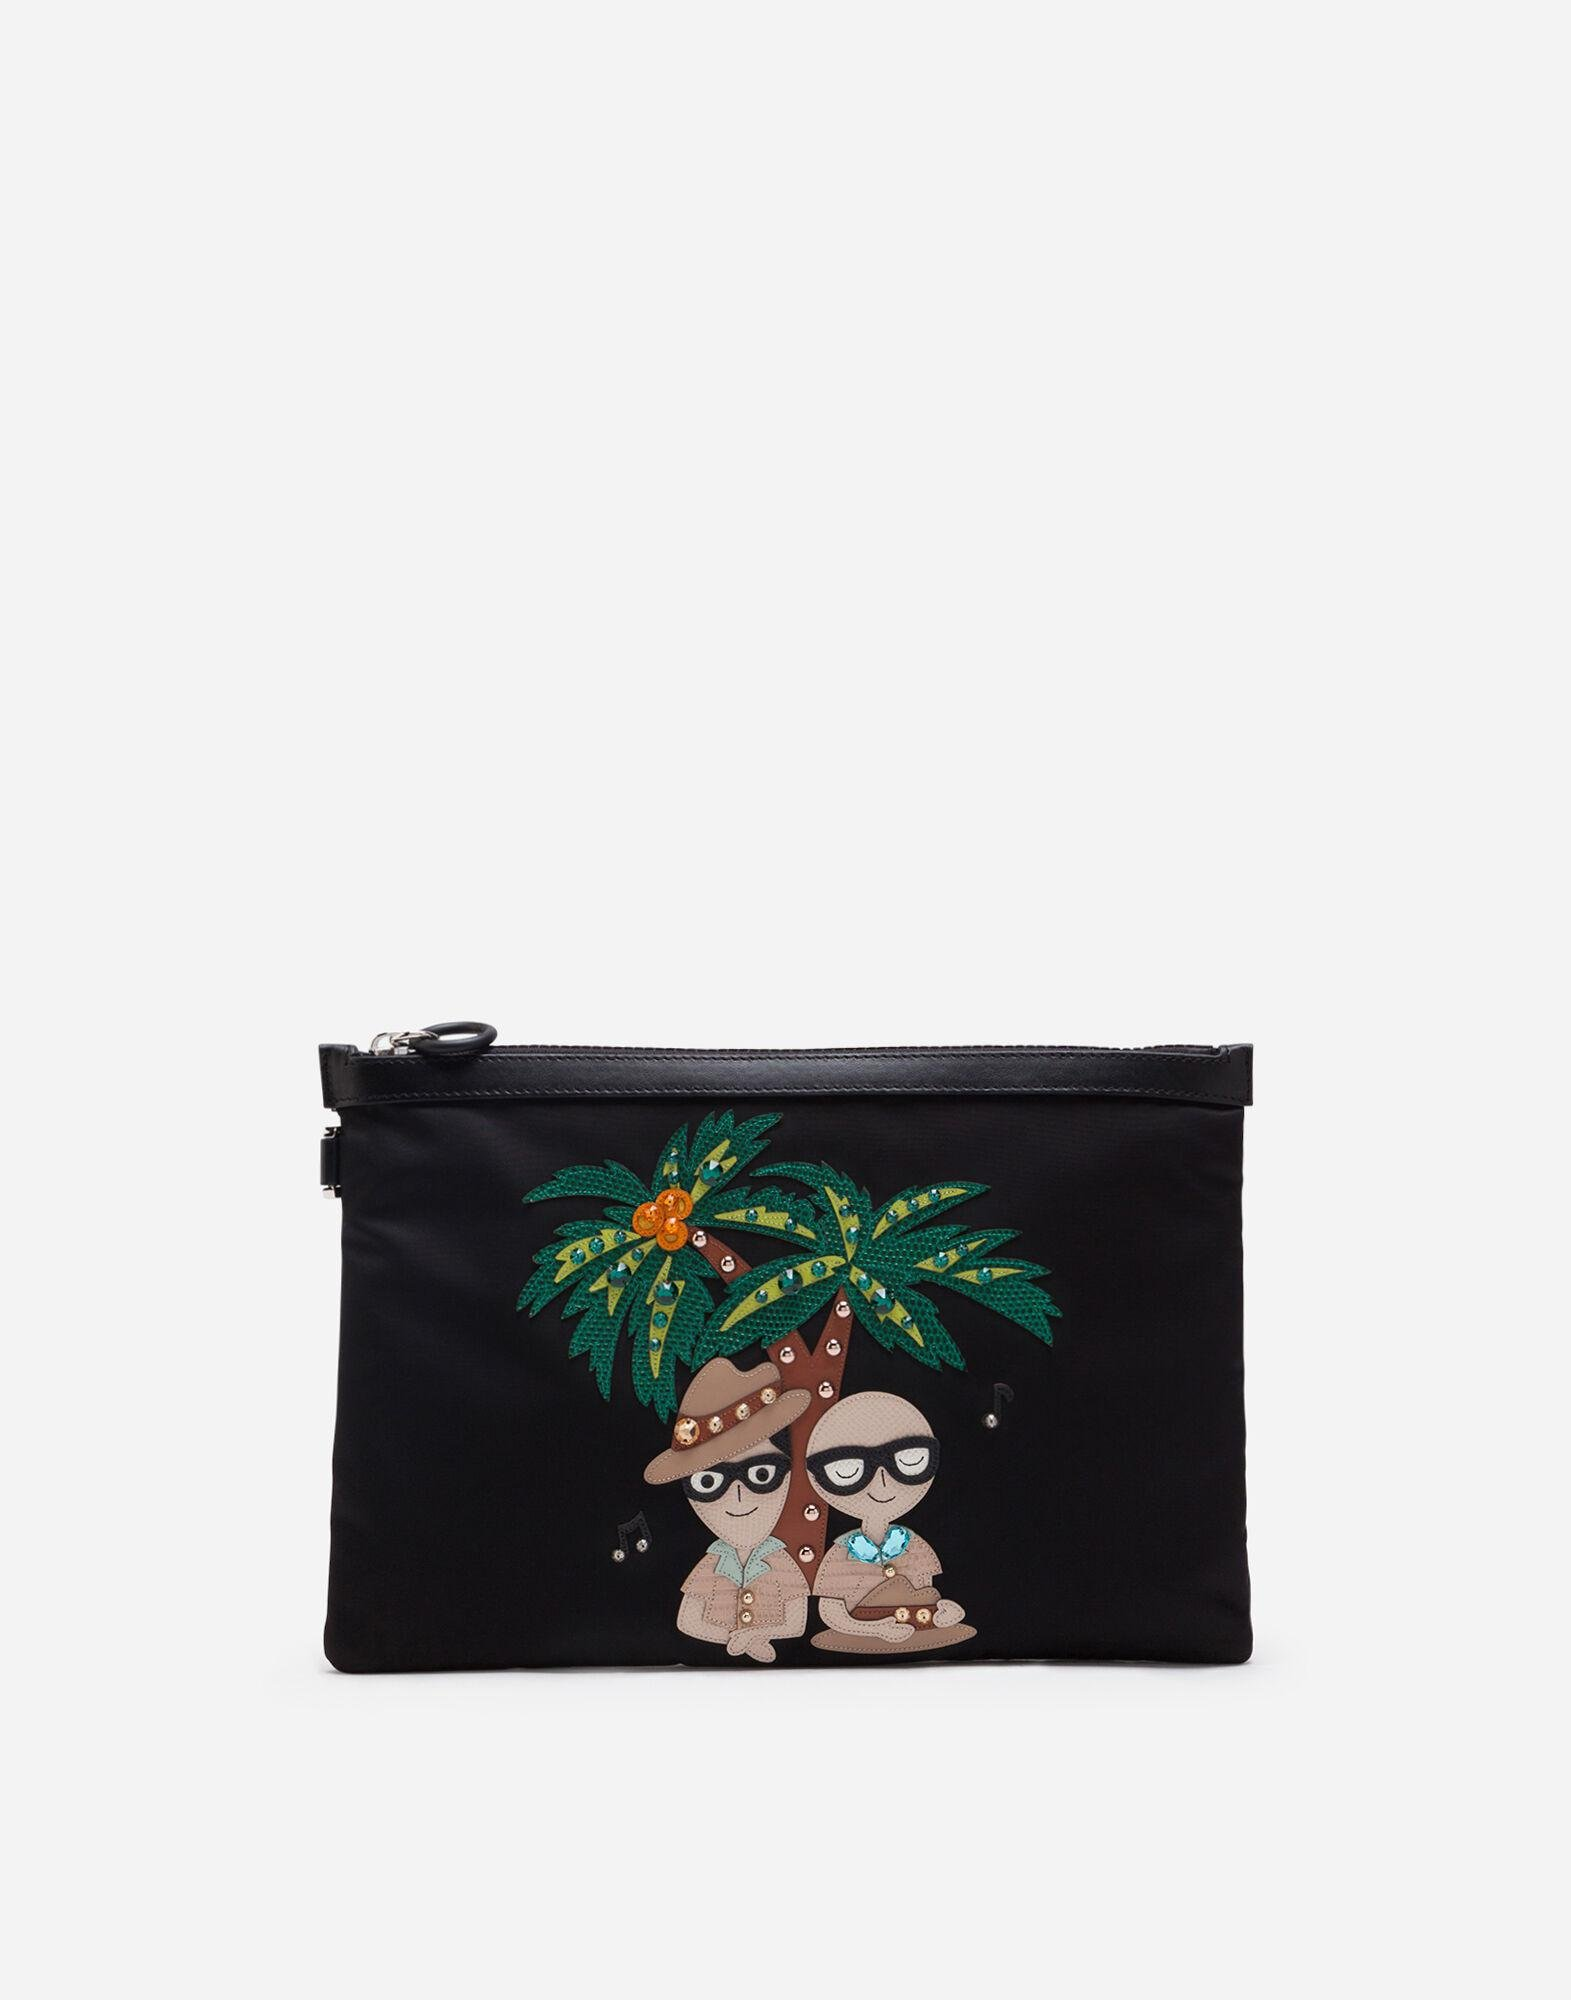 Dna clutch bag in nylon with tropical stylist patches